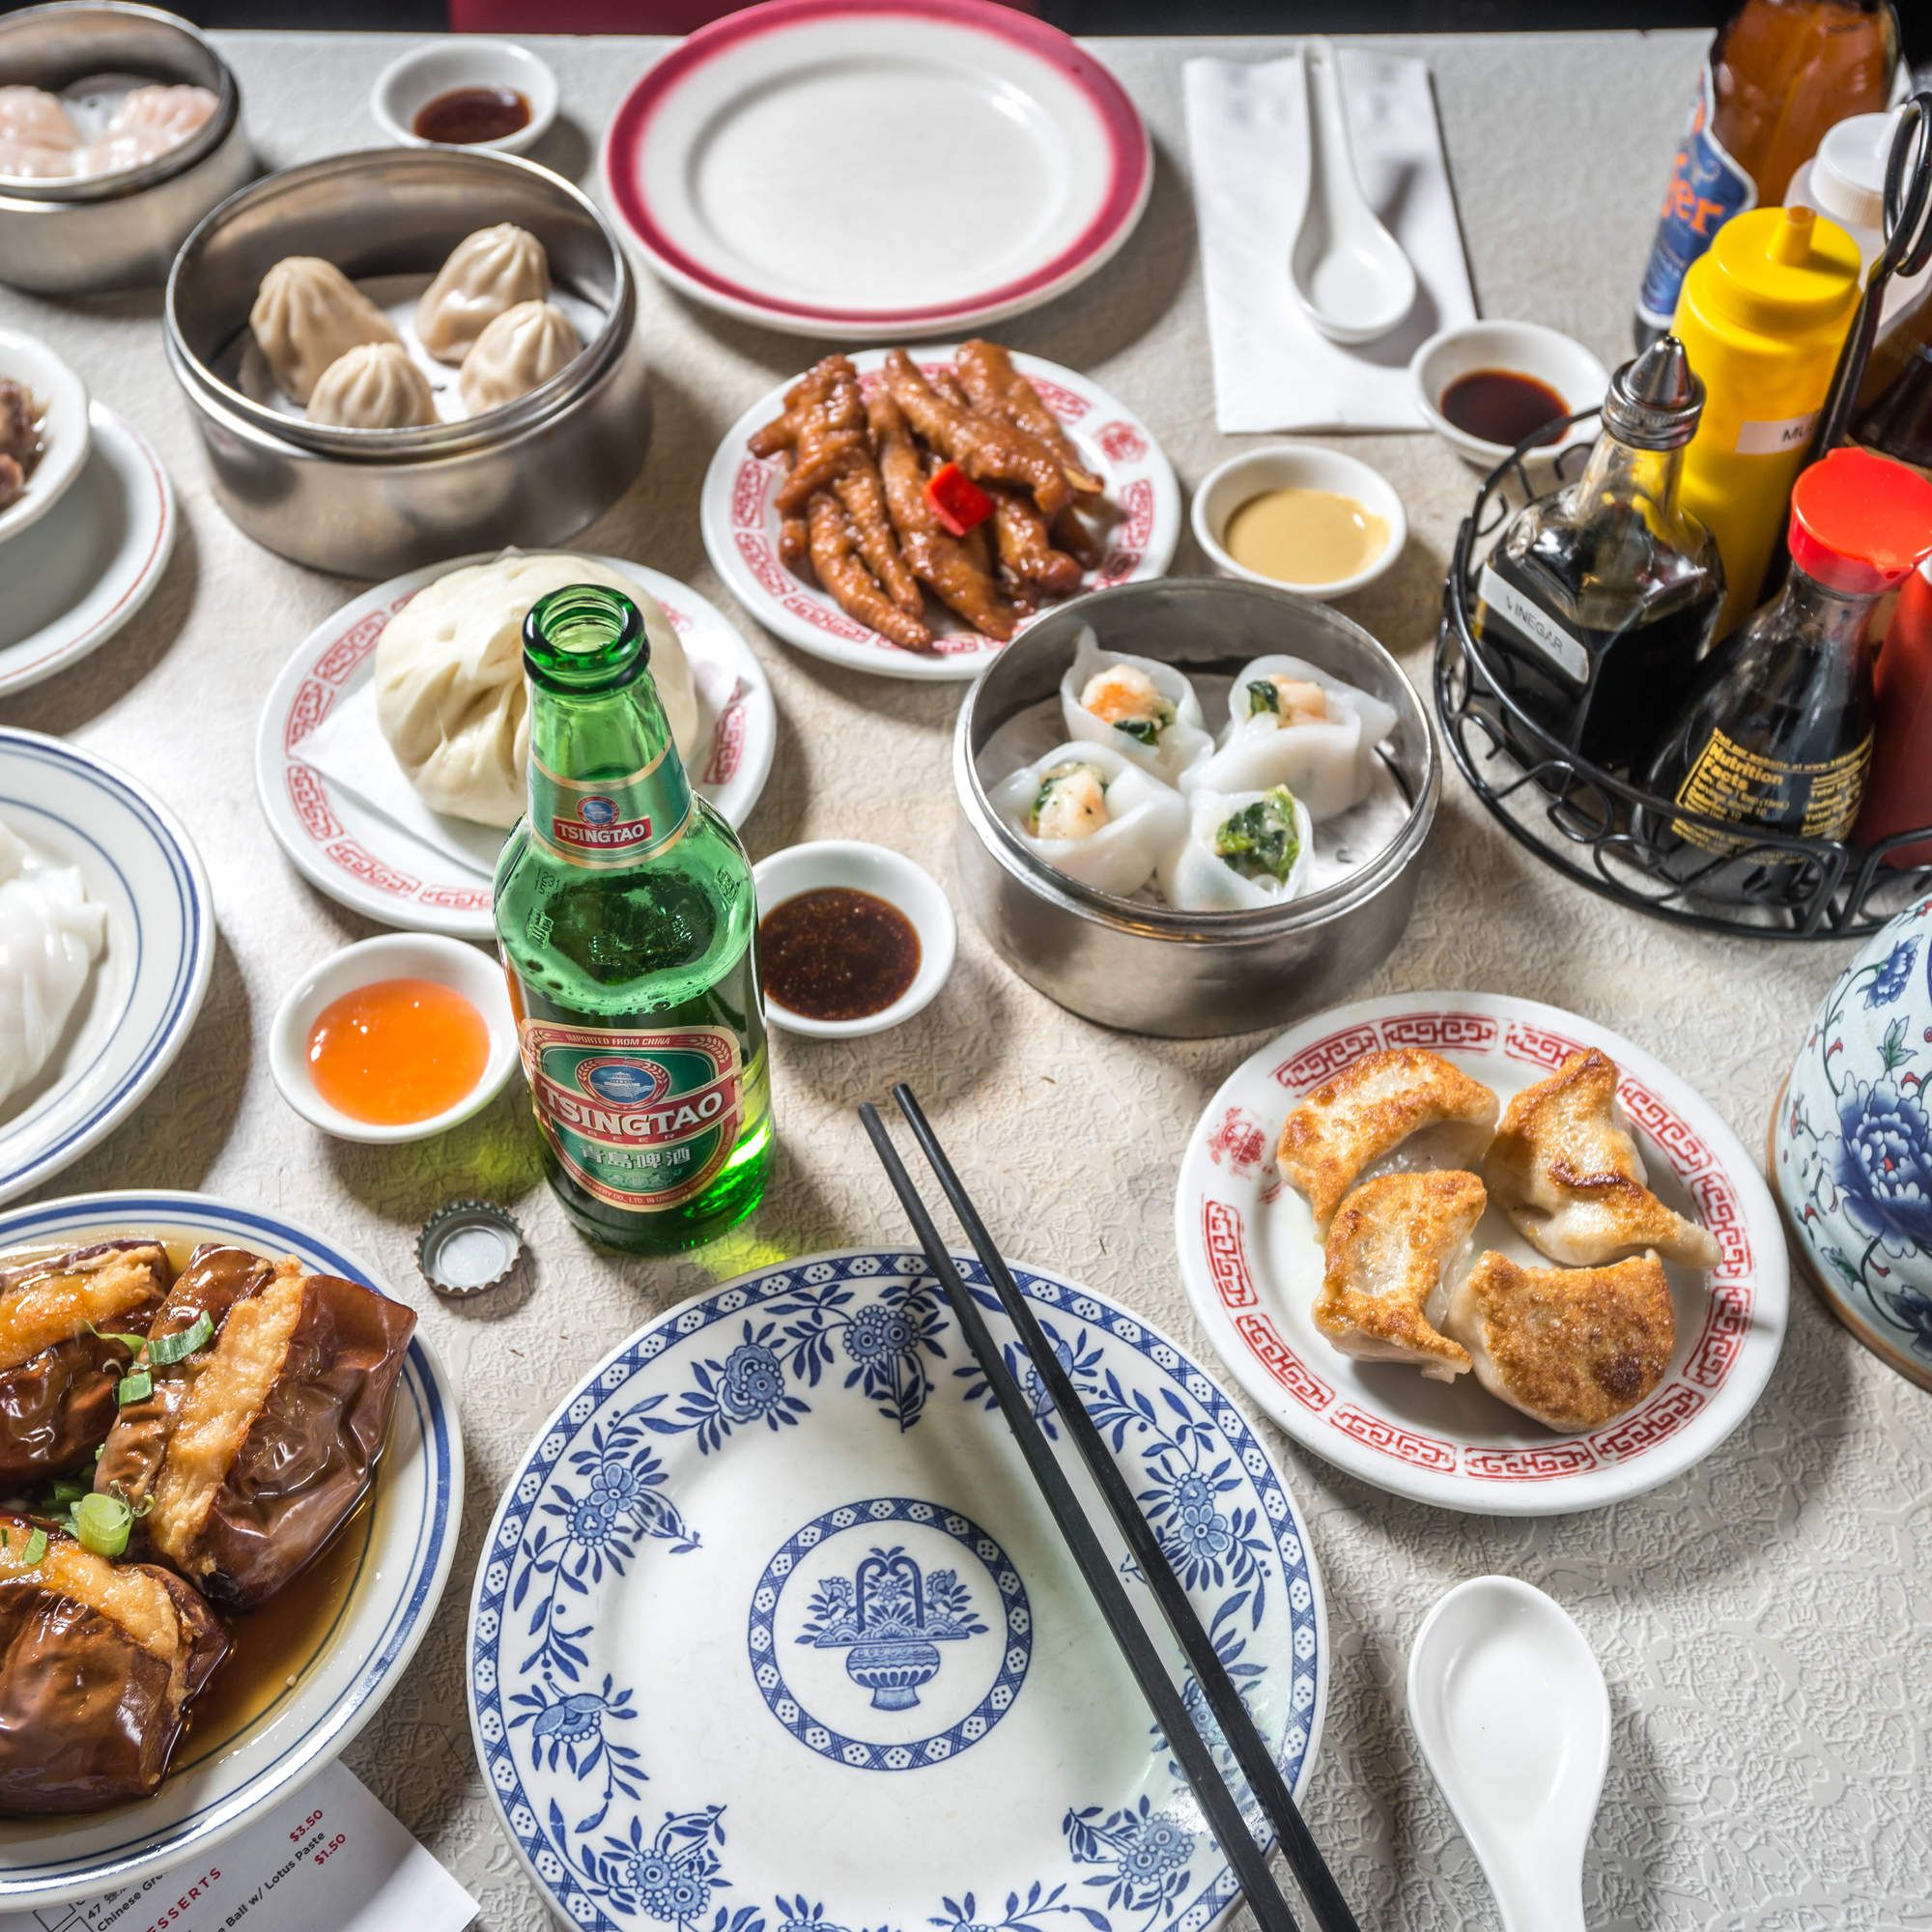 The Definitive Guide To Eating And Drinking In Chinatown Best Chinese Food Nyc Food Best Chinese Food Nyc